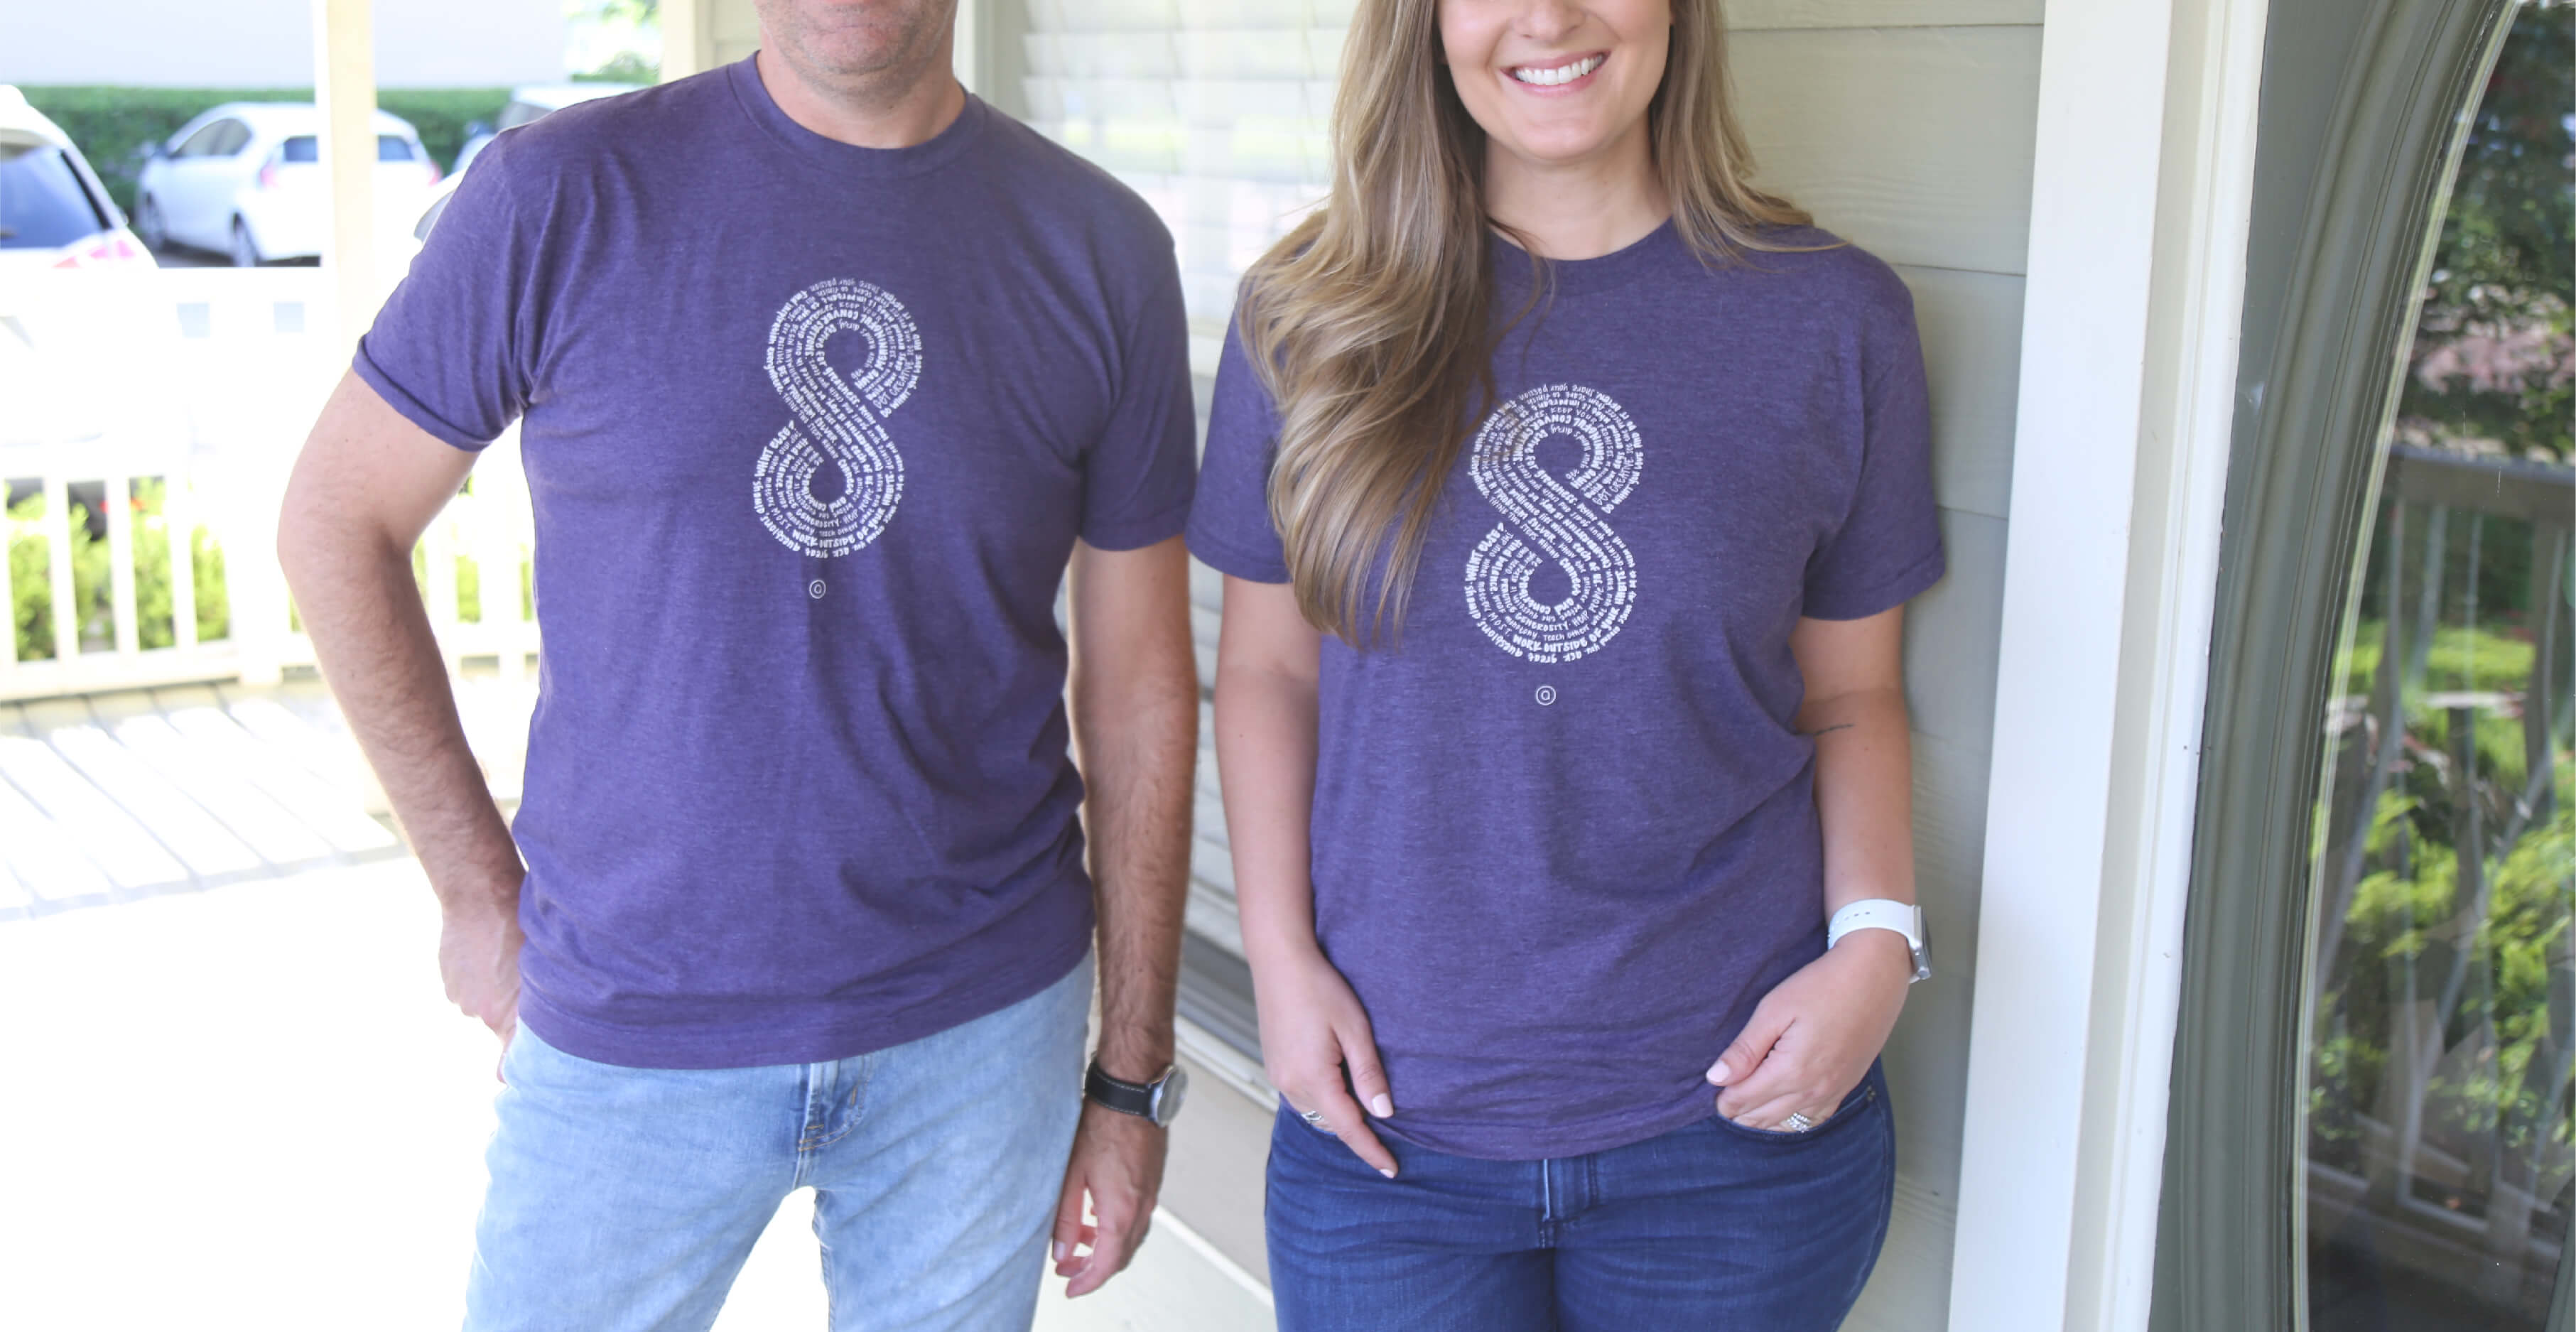 Close up of both a male and female Aedieno team member standing on a brightly lit front porch wearing purple Aedieno 8-year anniversary shirts.